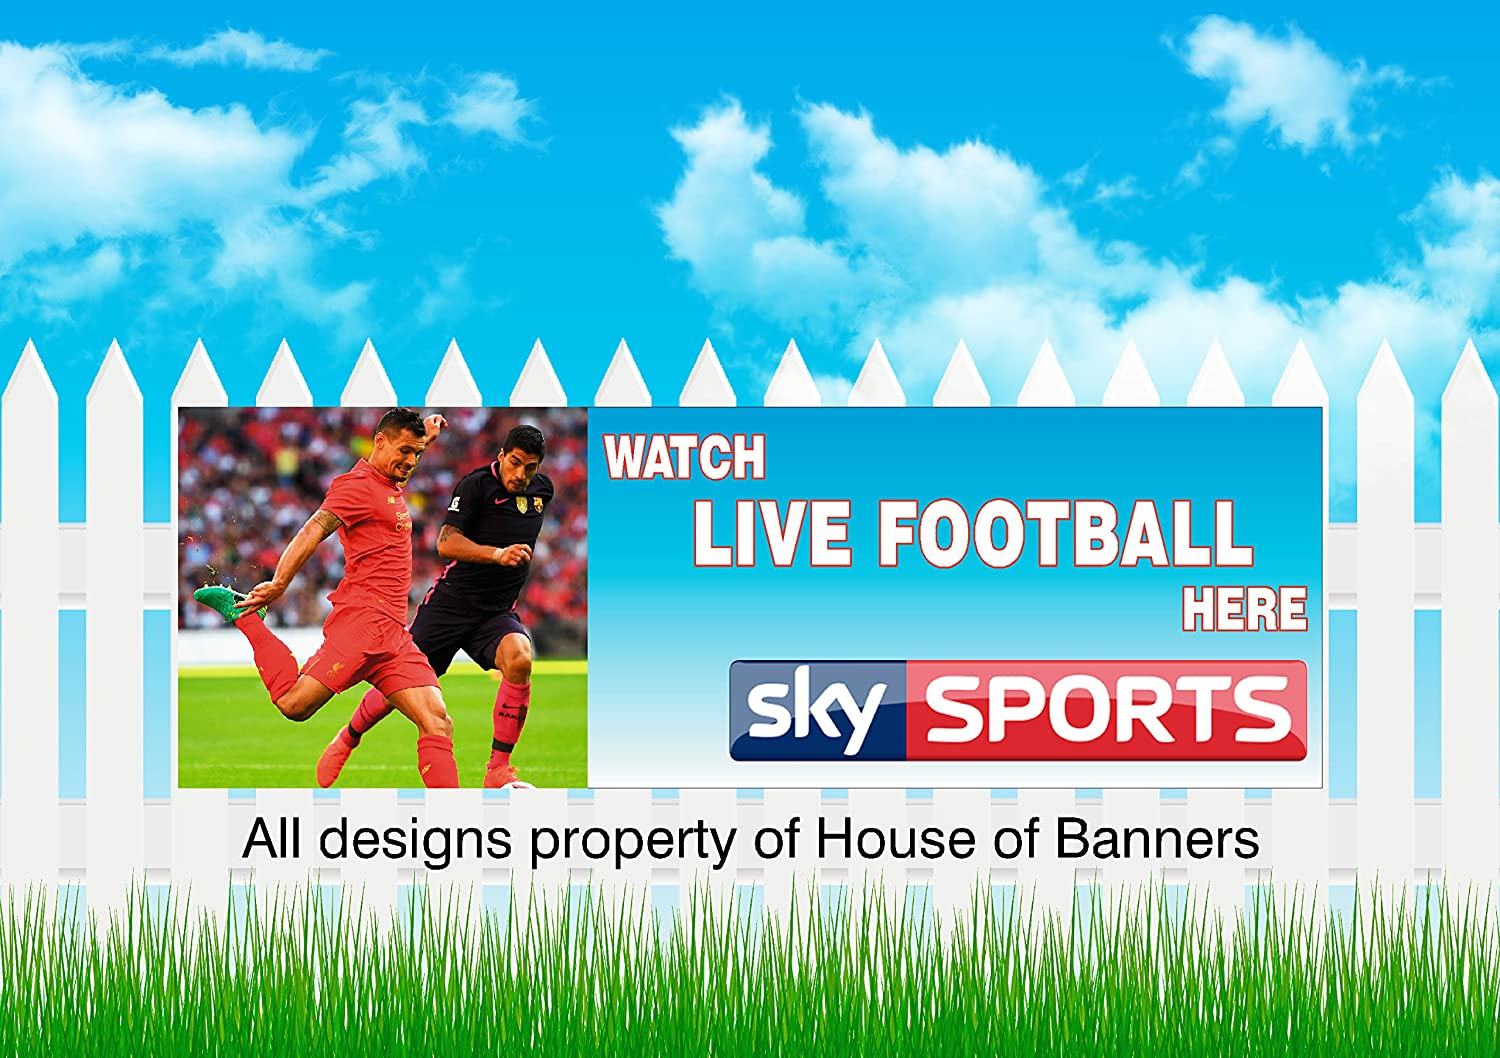 Sky Sports Pvc Banner Vinyl Advertising Printed Signs, Pub Banner,Outdoor/Indoor For Fence Or Garage Wall. 6x2ft house of banners